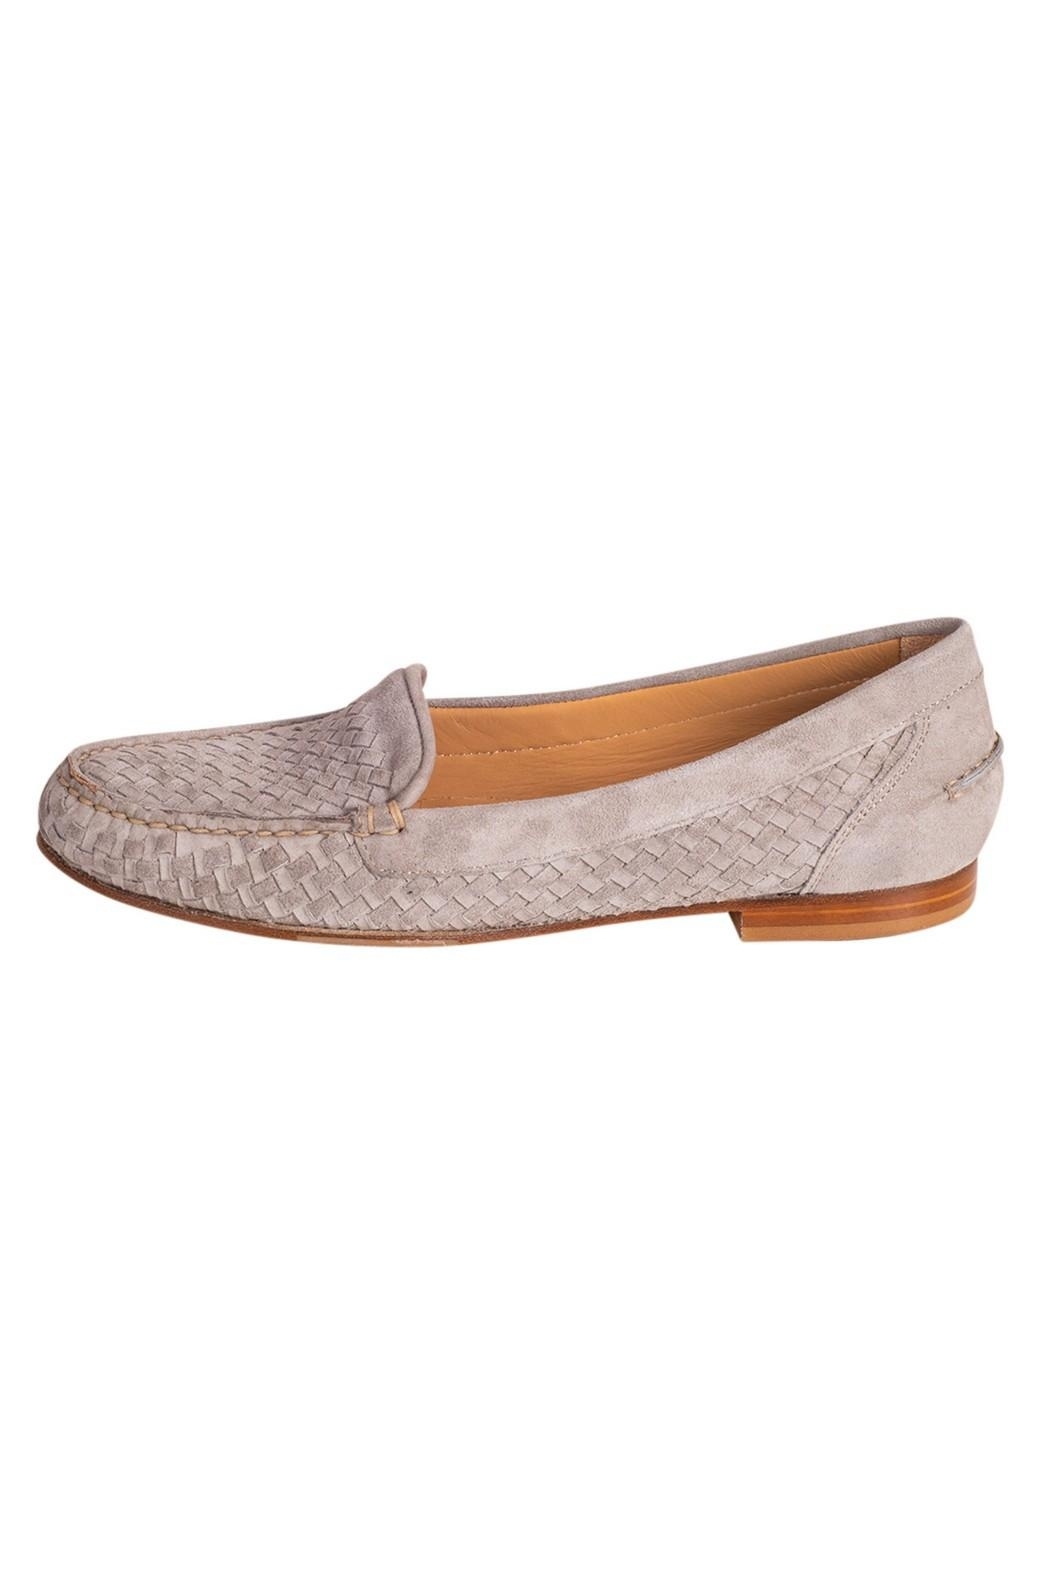 Pascucci Stone Suede Loafer - Main Image